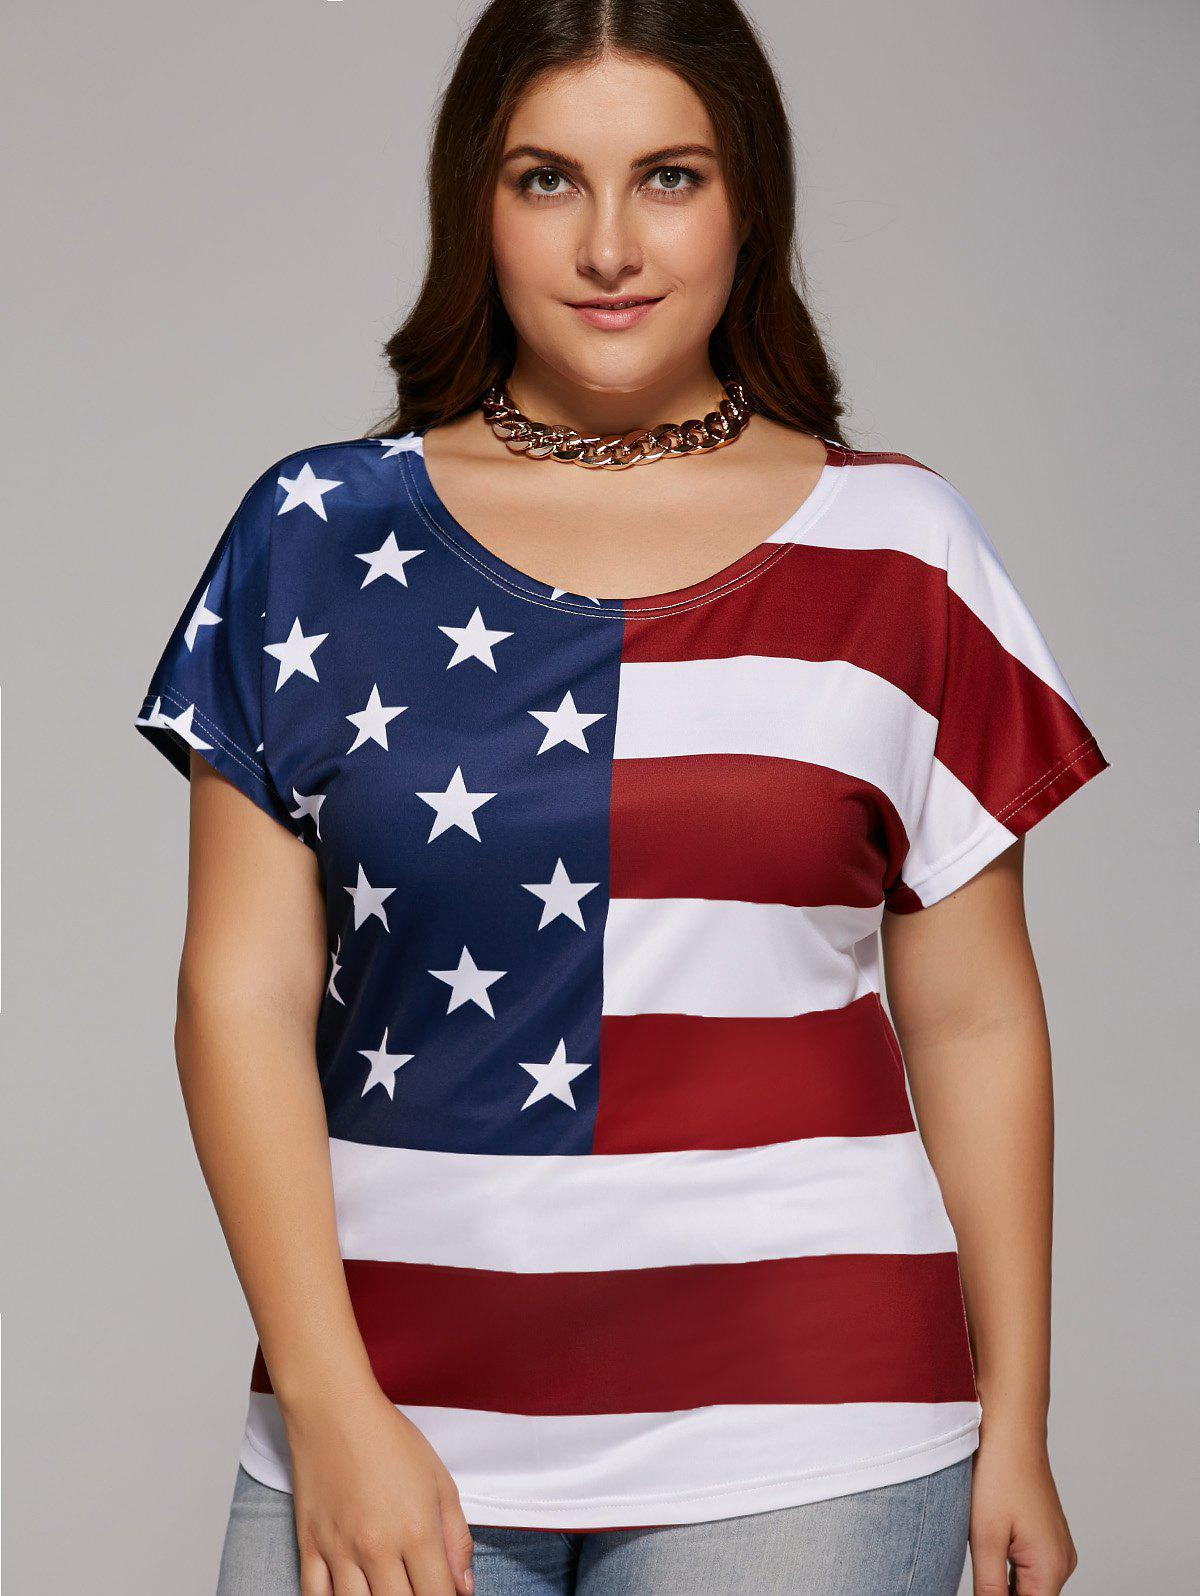 Plus Size Scoop Neck American Flag T-Shirt - RED/WHITE/BLUE 5XL